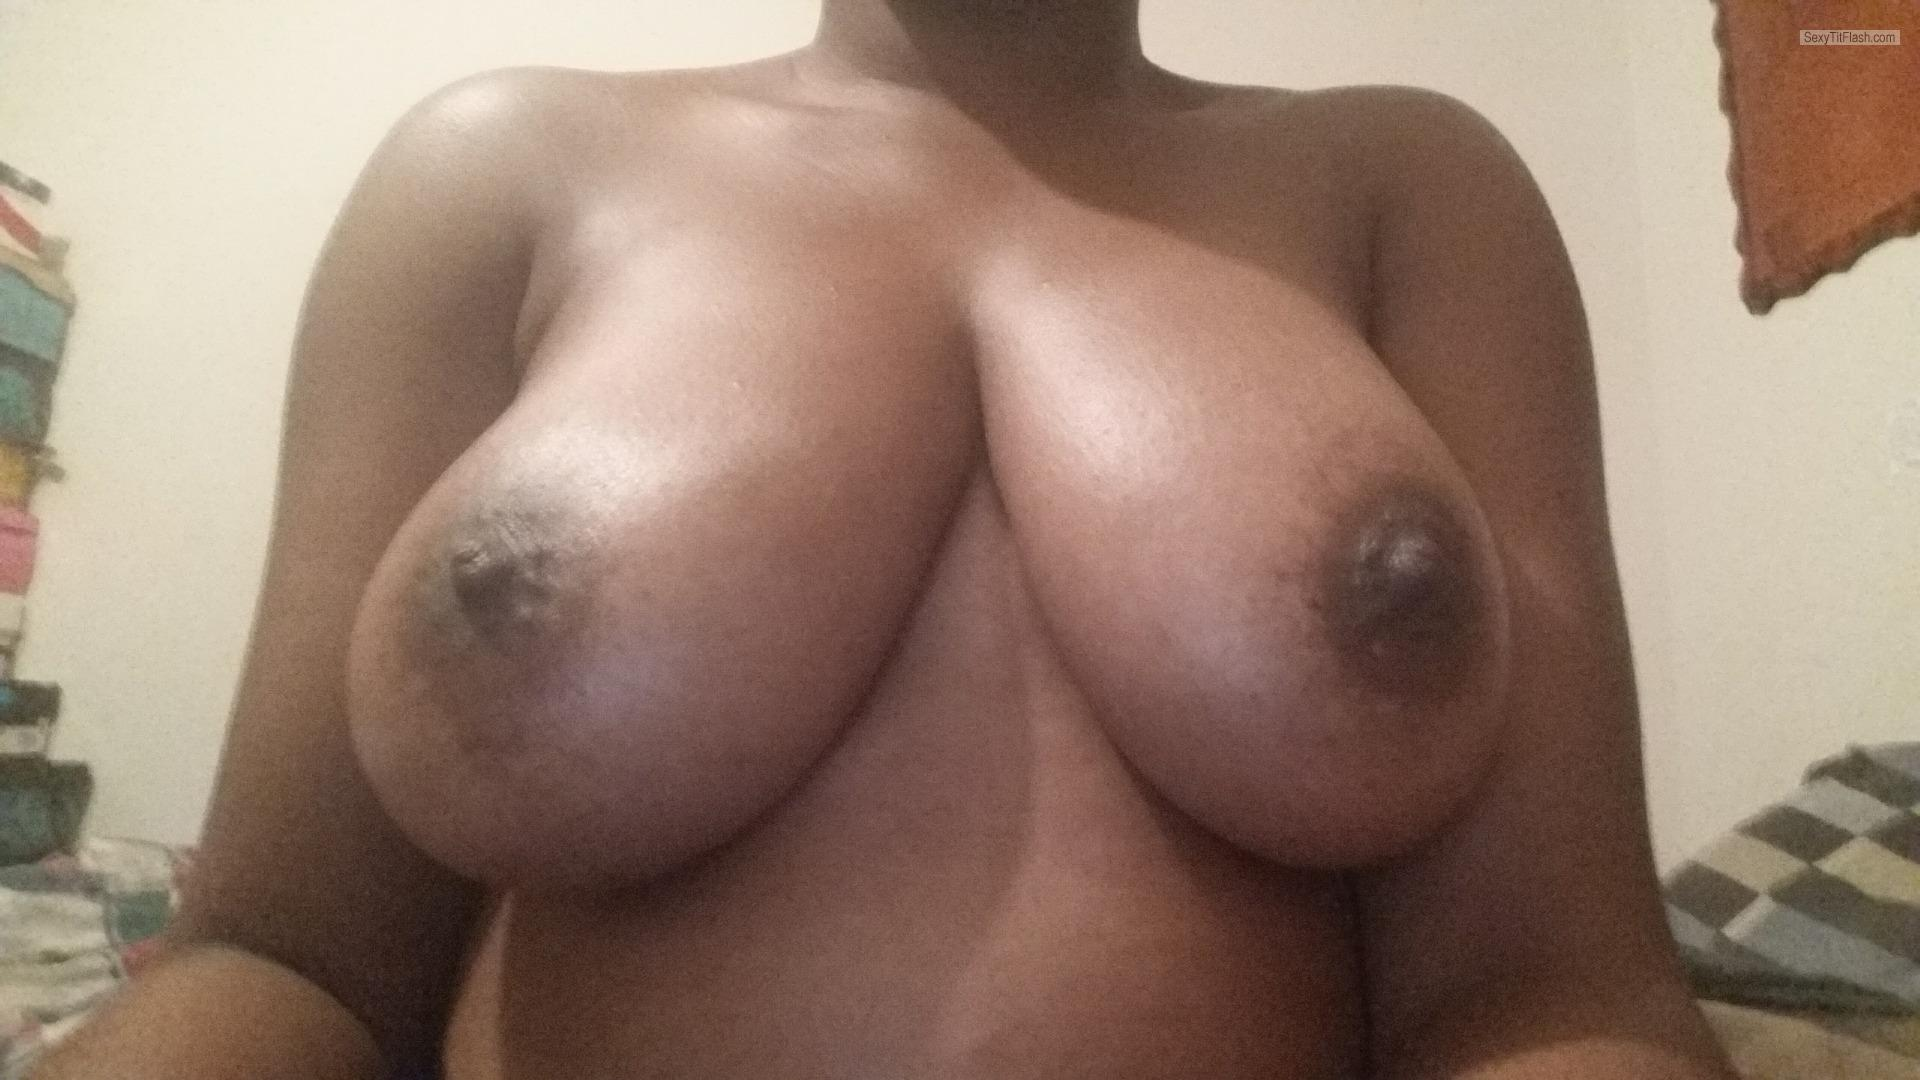 Tit Flash: My Big Tits (Selfie) - Jedora from United States